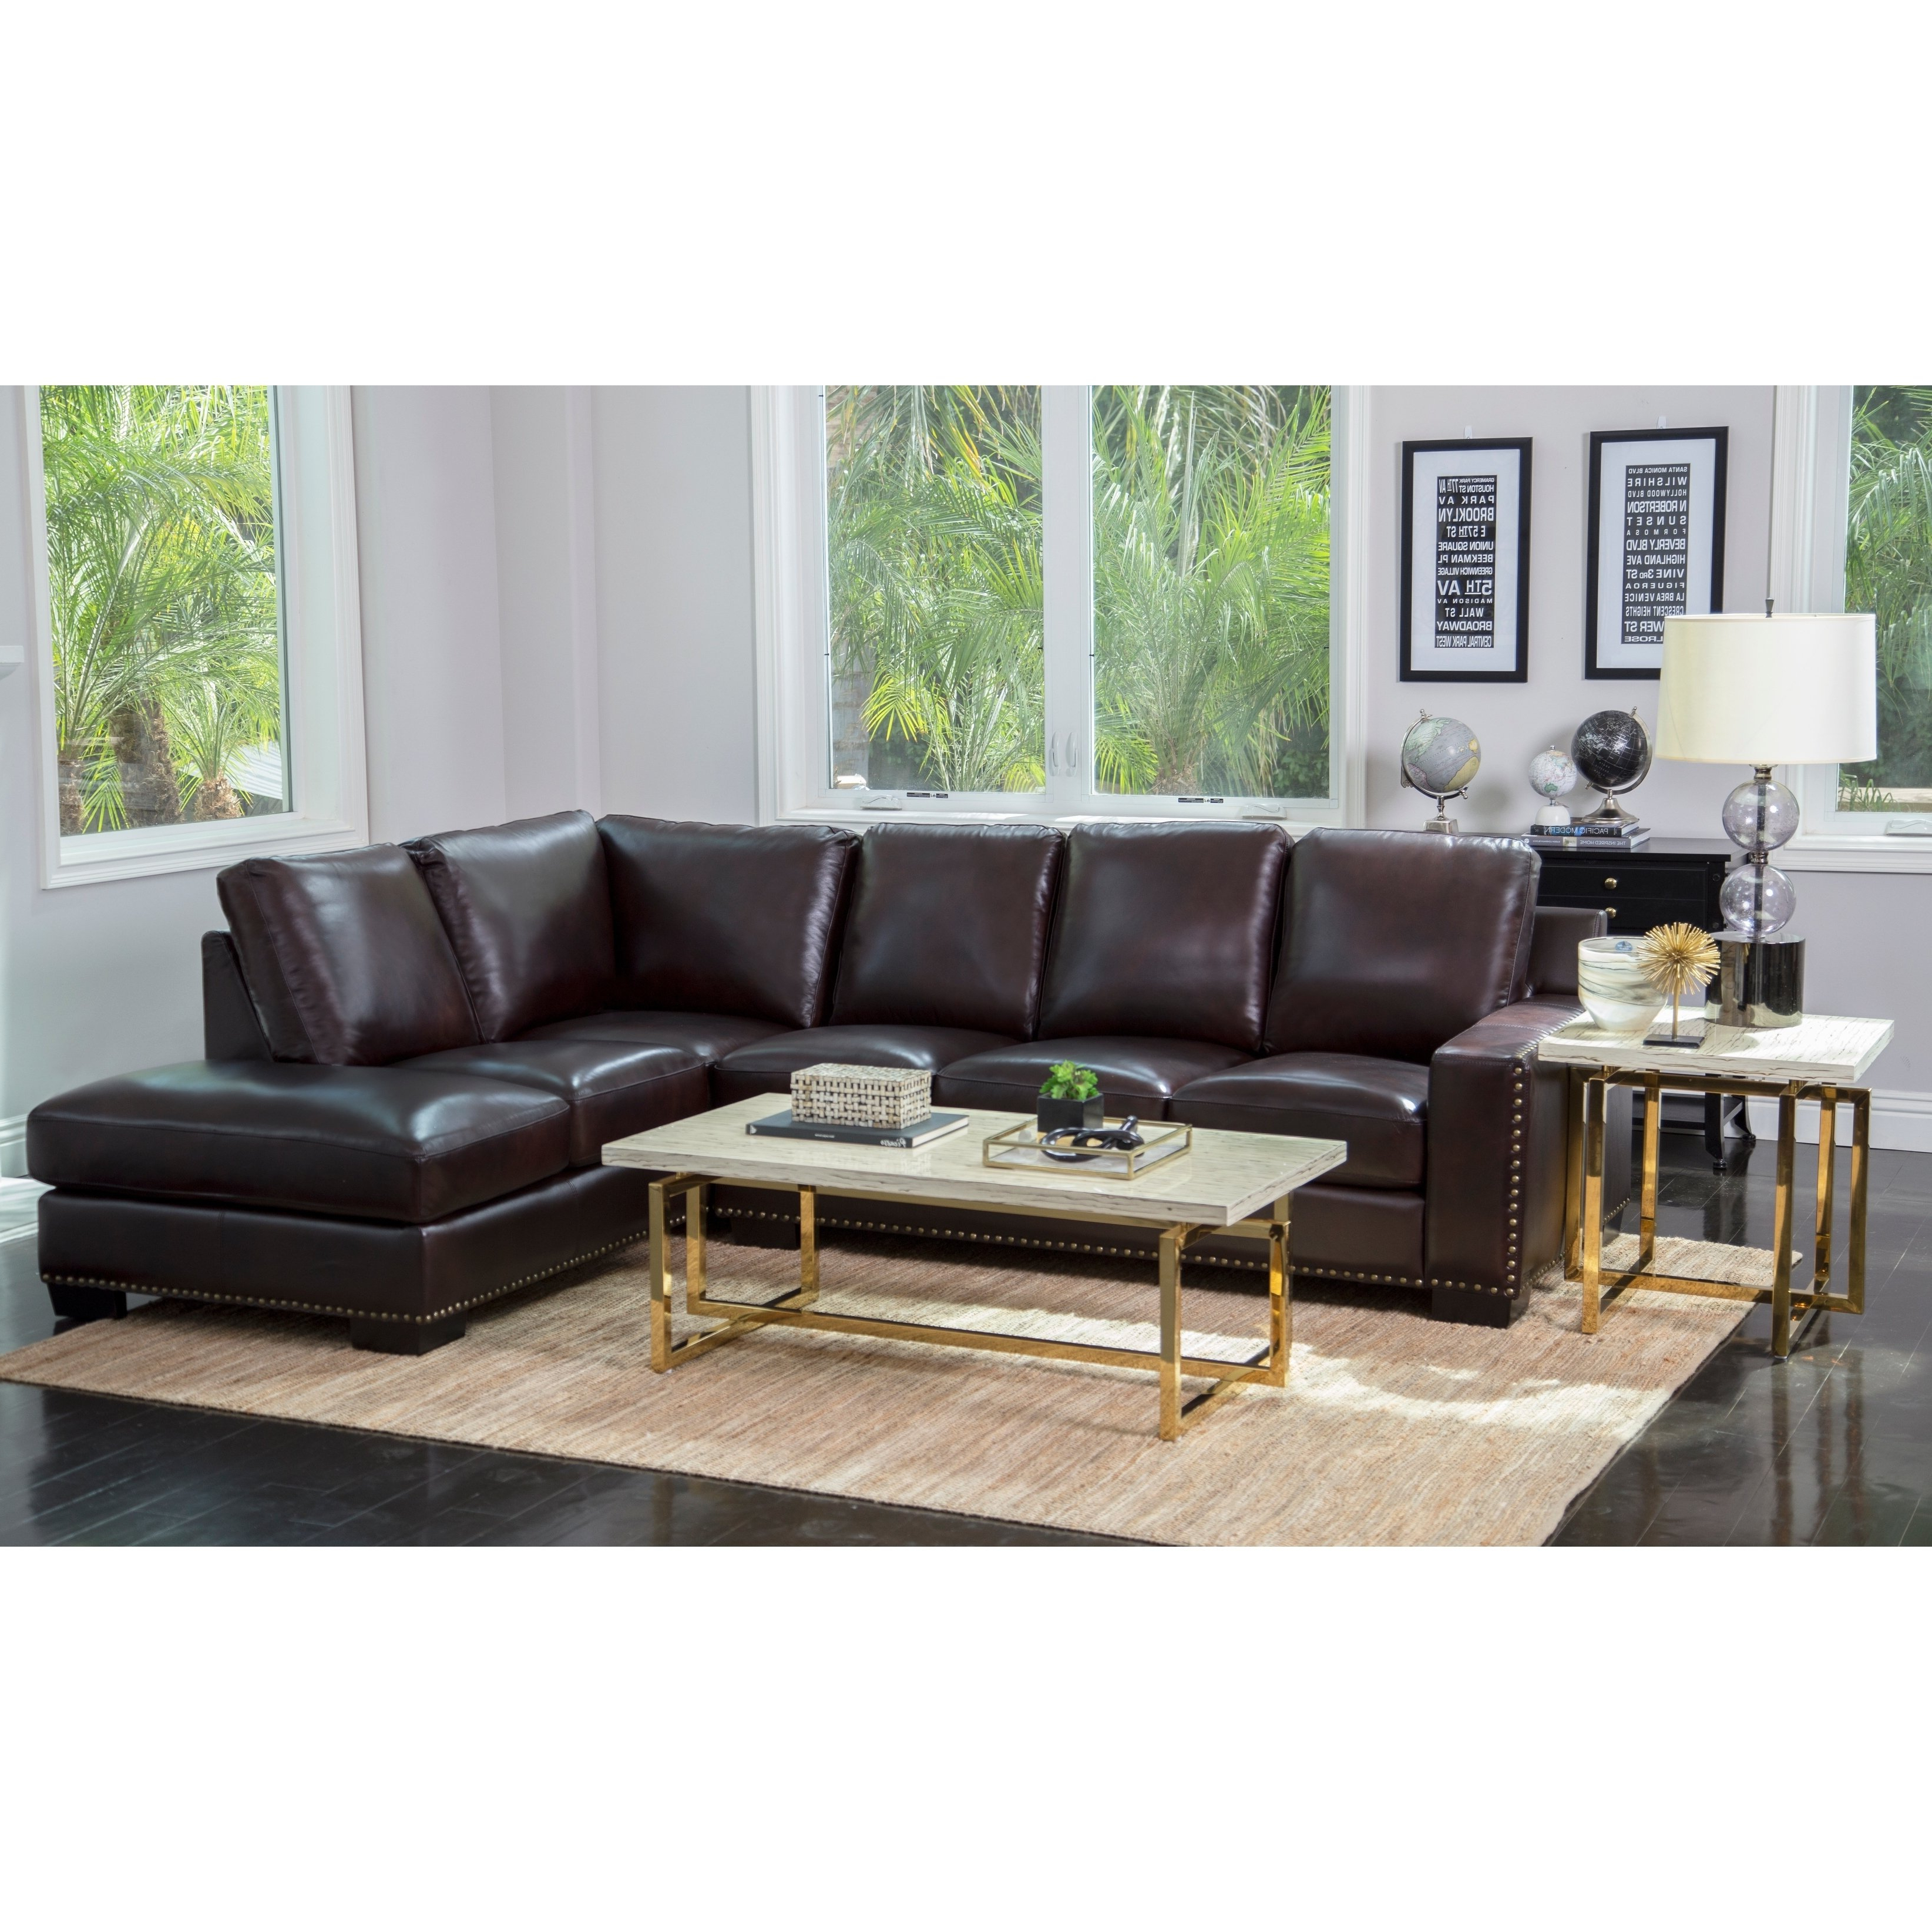 Trendy Shop Abbyson Monaco Brown Top Grain Leather Sectional Sofa – On Sale With Regard To Adeline 3 Piece Sectionals (Gallery 17 of 20)